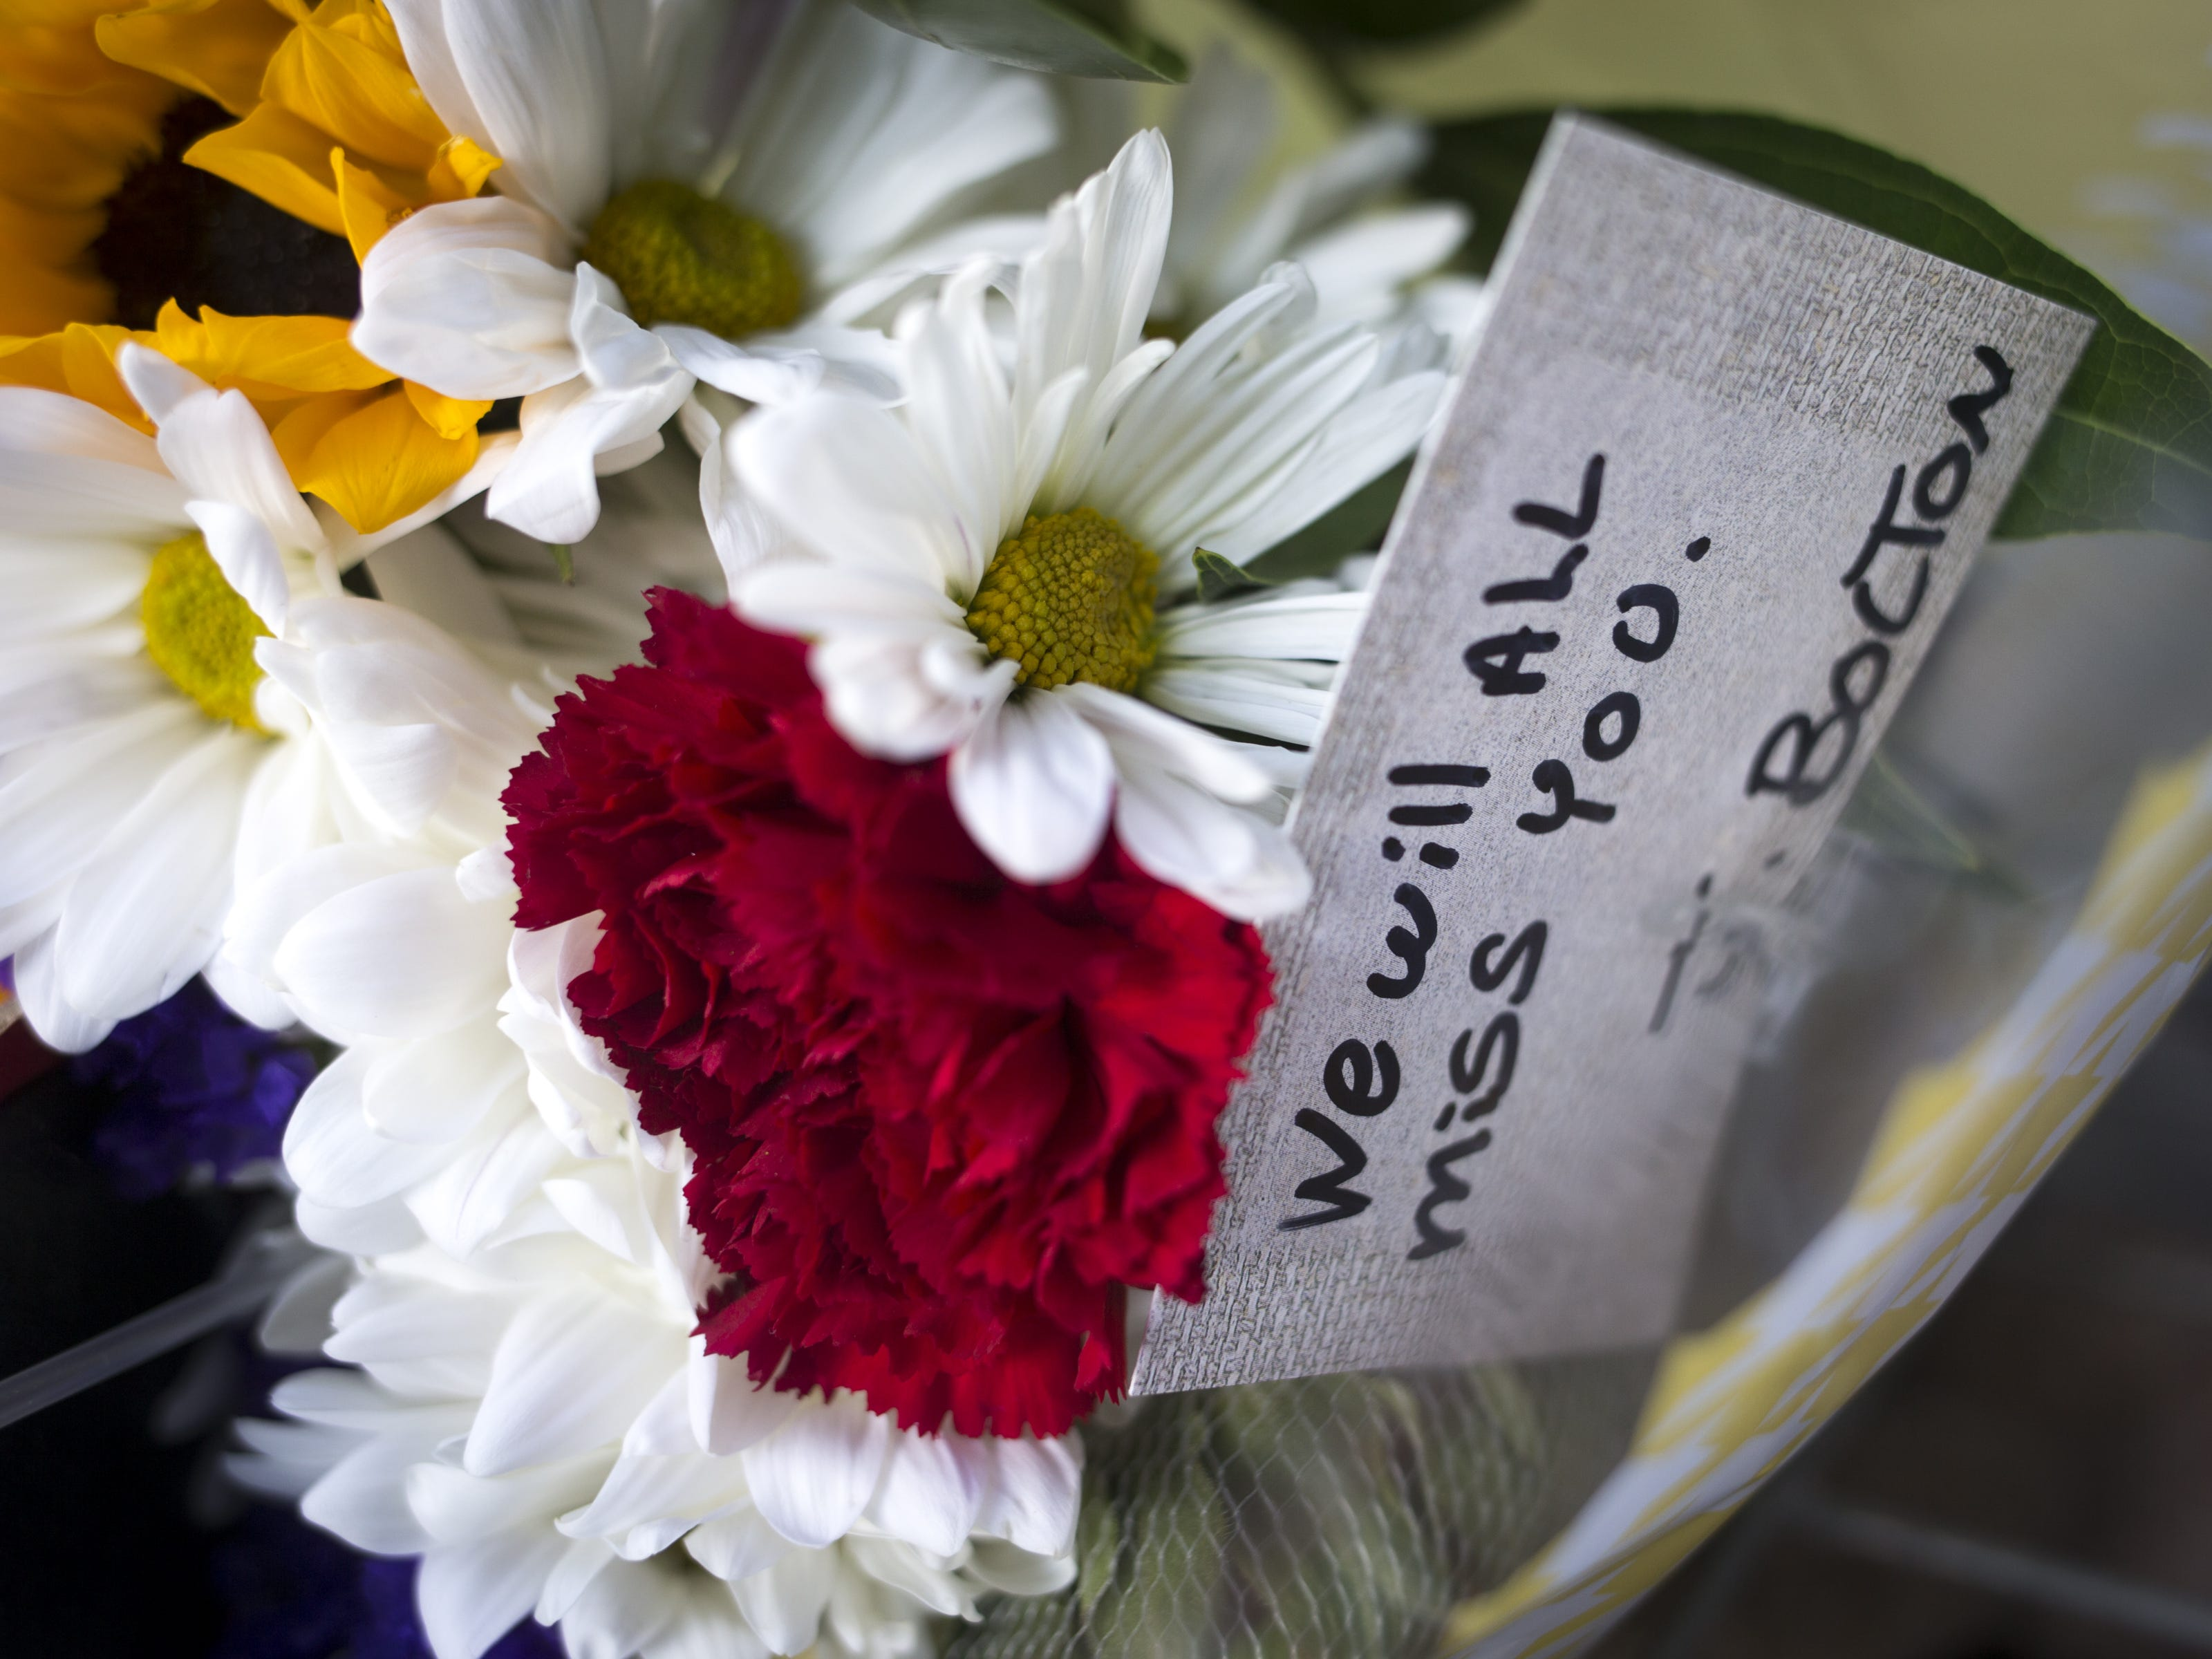 James Bolton left cards and flowers at the makeshift memorial outside Sen. John McCain's office on Aug. 26, 2018, in Phoenix.